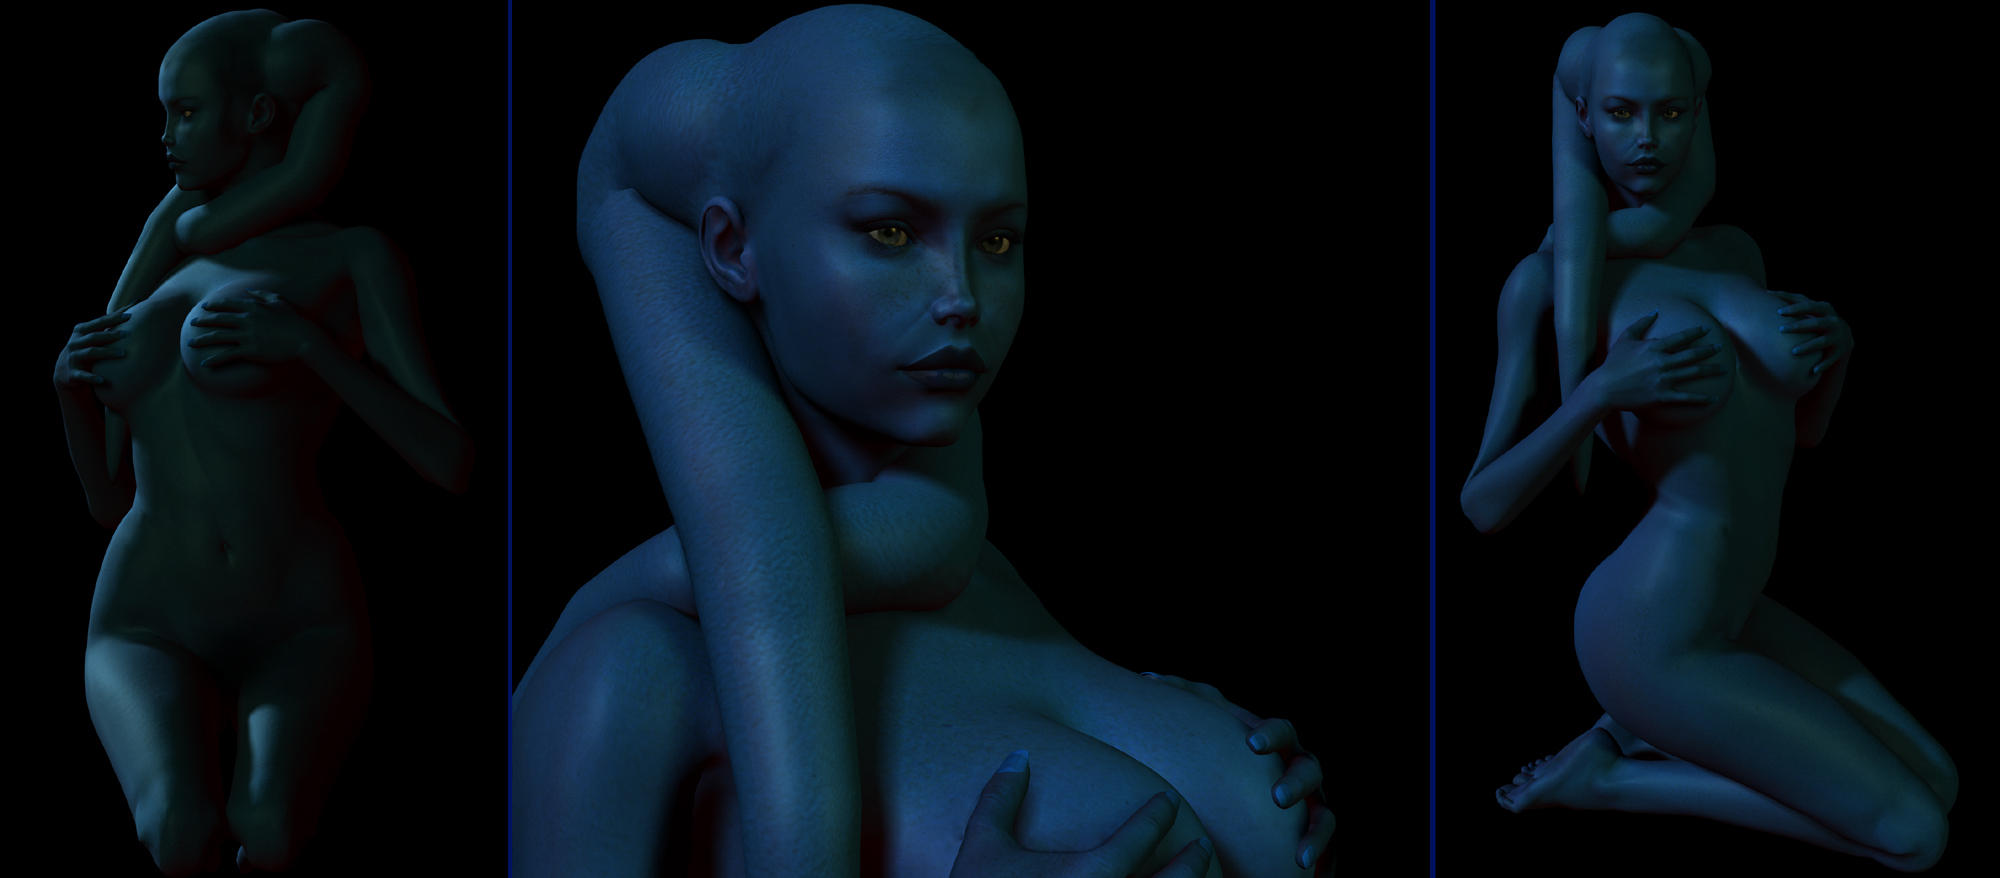 Twi'lek sexy wallpapers erotic gallery